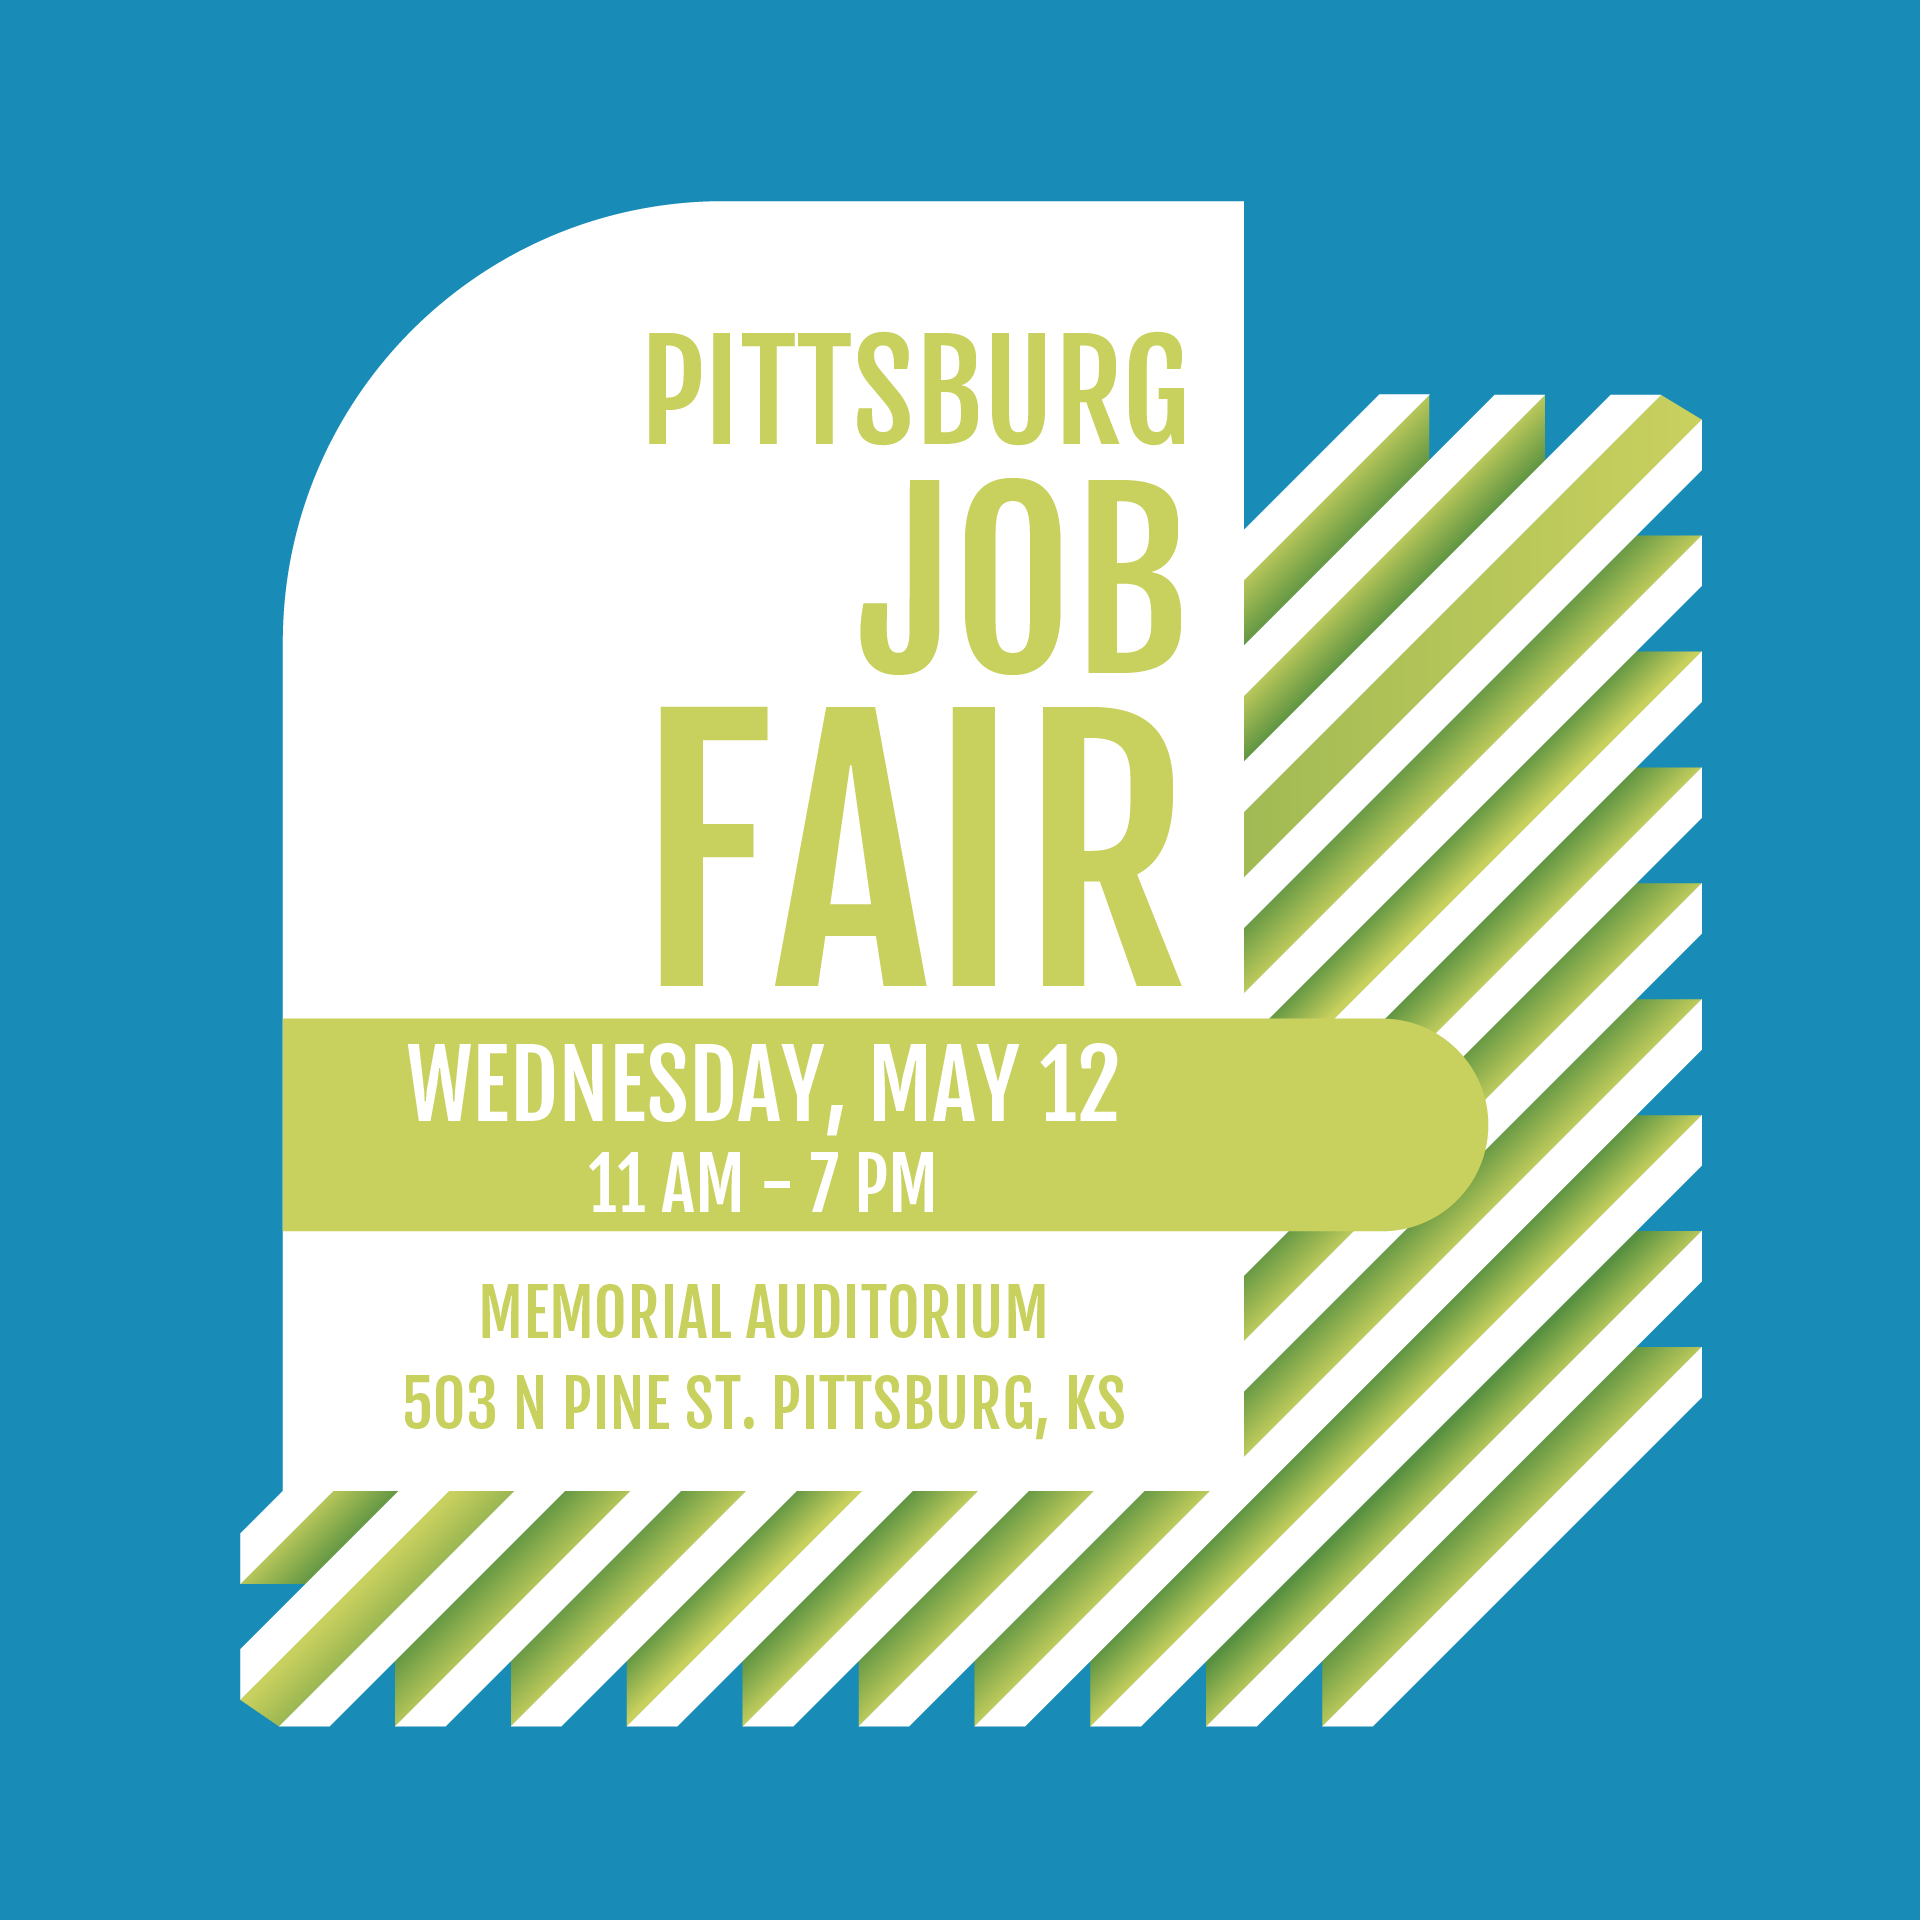 City of Pittsburg and Pittsburg Area Chamber of Commerce to Host Job Fair